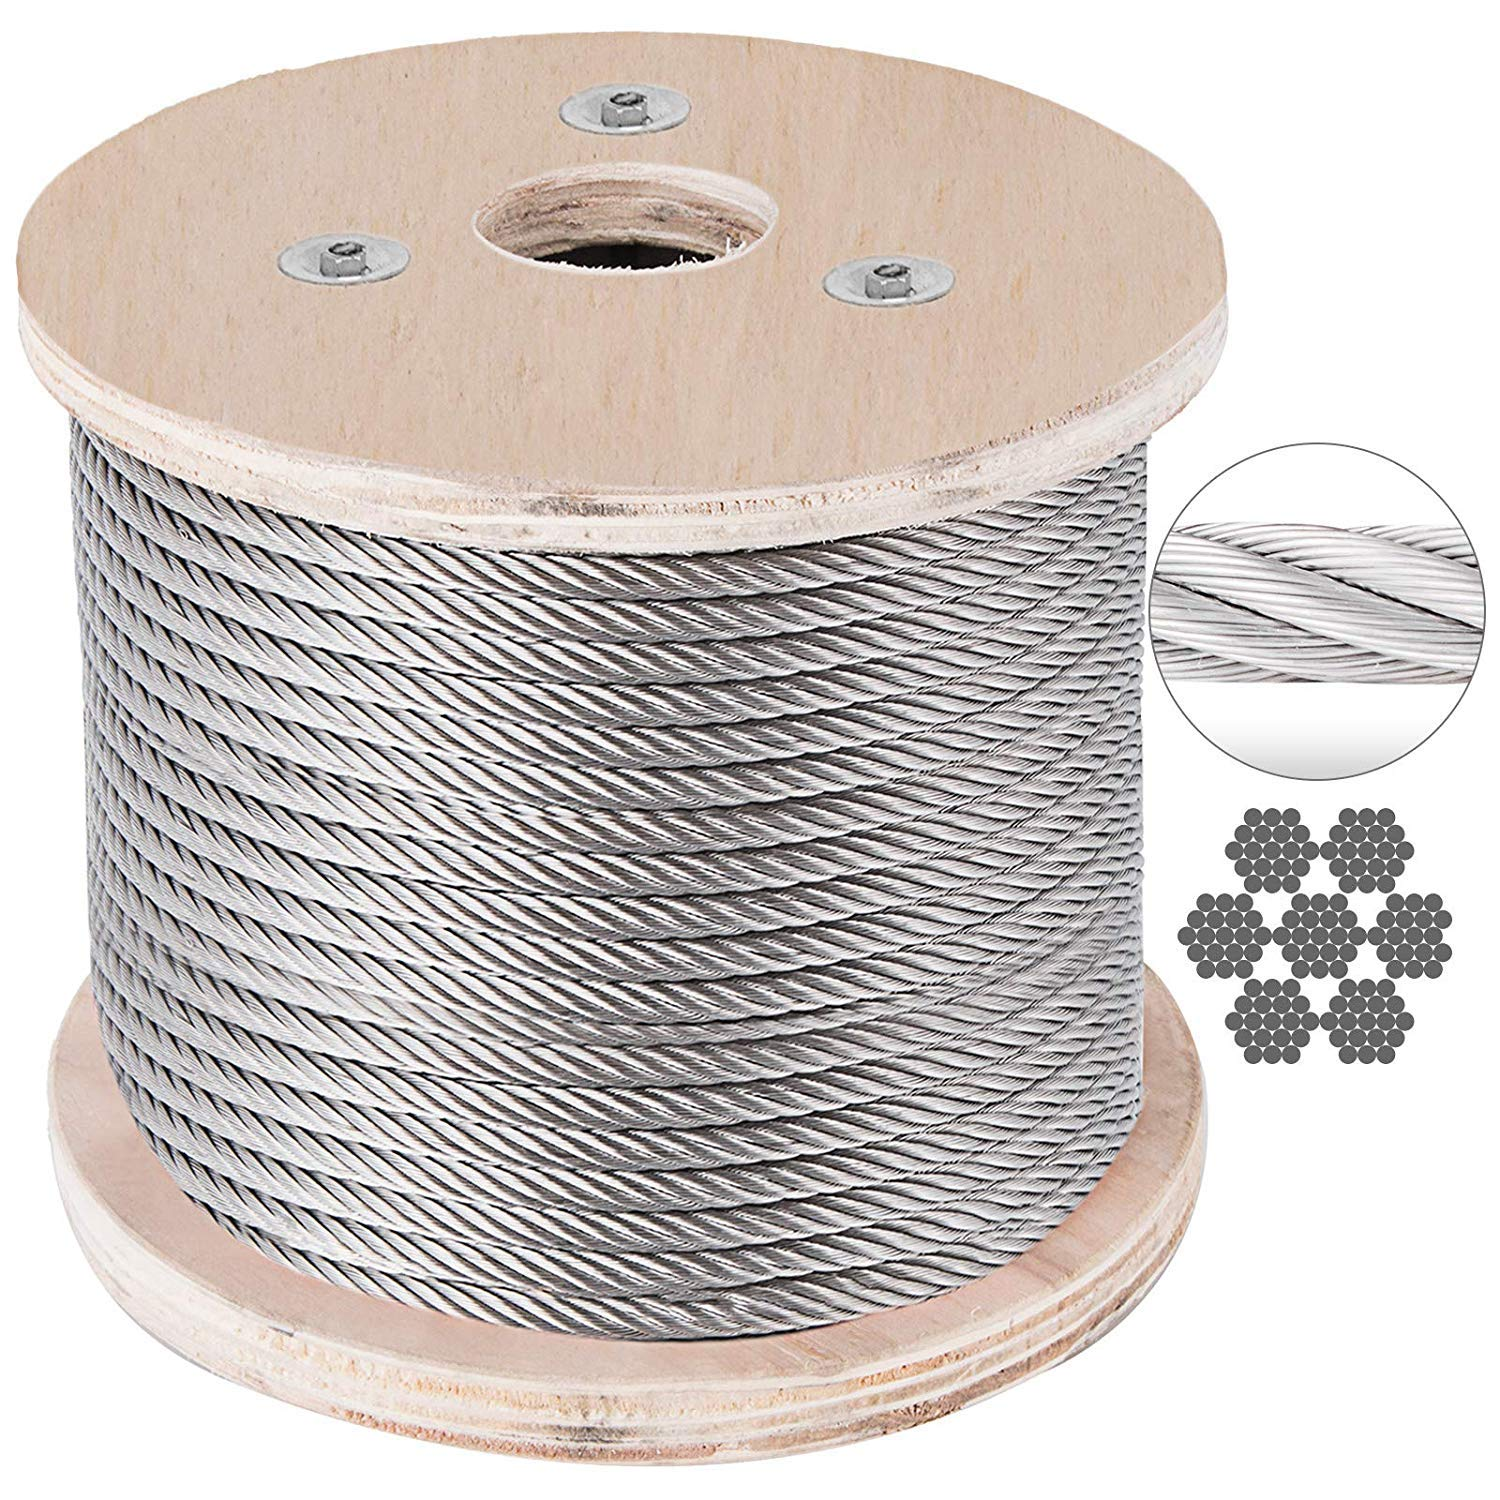 BestEquip Stainless Steel Cable 7 x 19 Aircraft Steel Cable Wire Rope SUS316 Winch Rope 1/4'' 200FT for Railing Decking DIY Balustrade